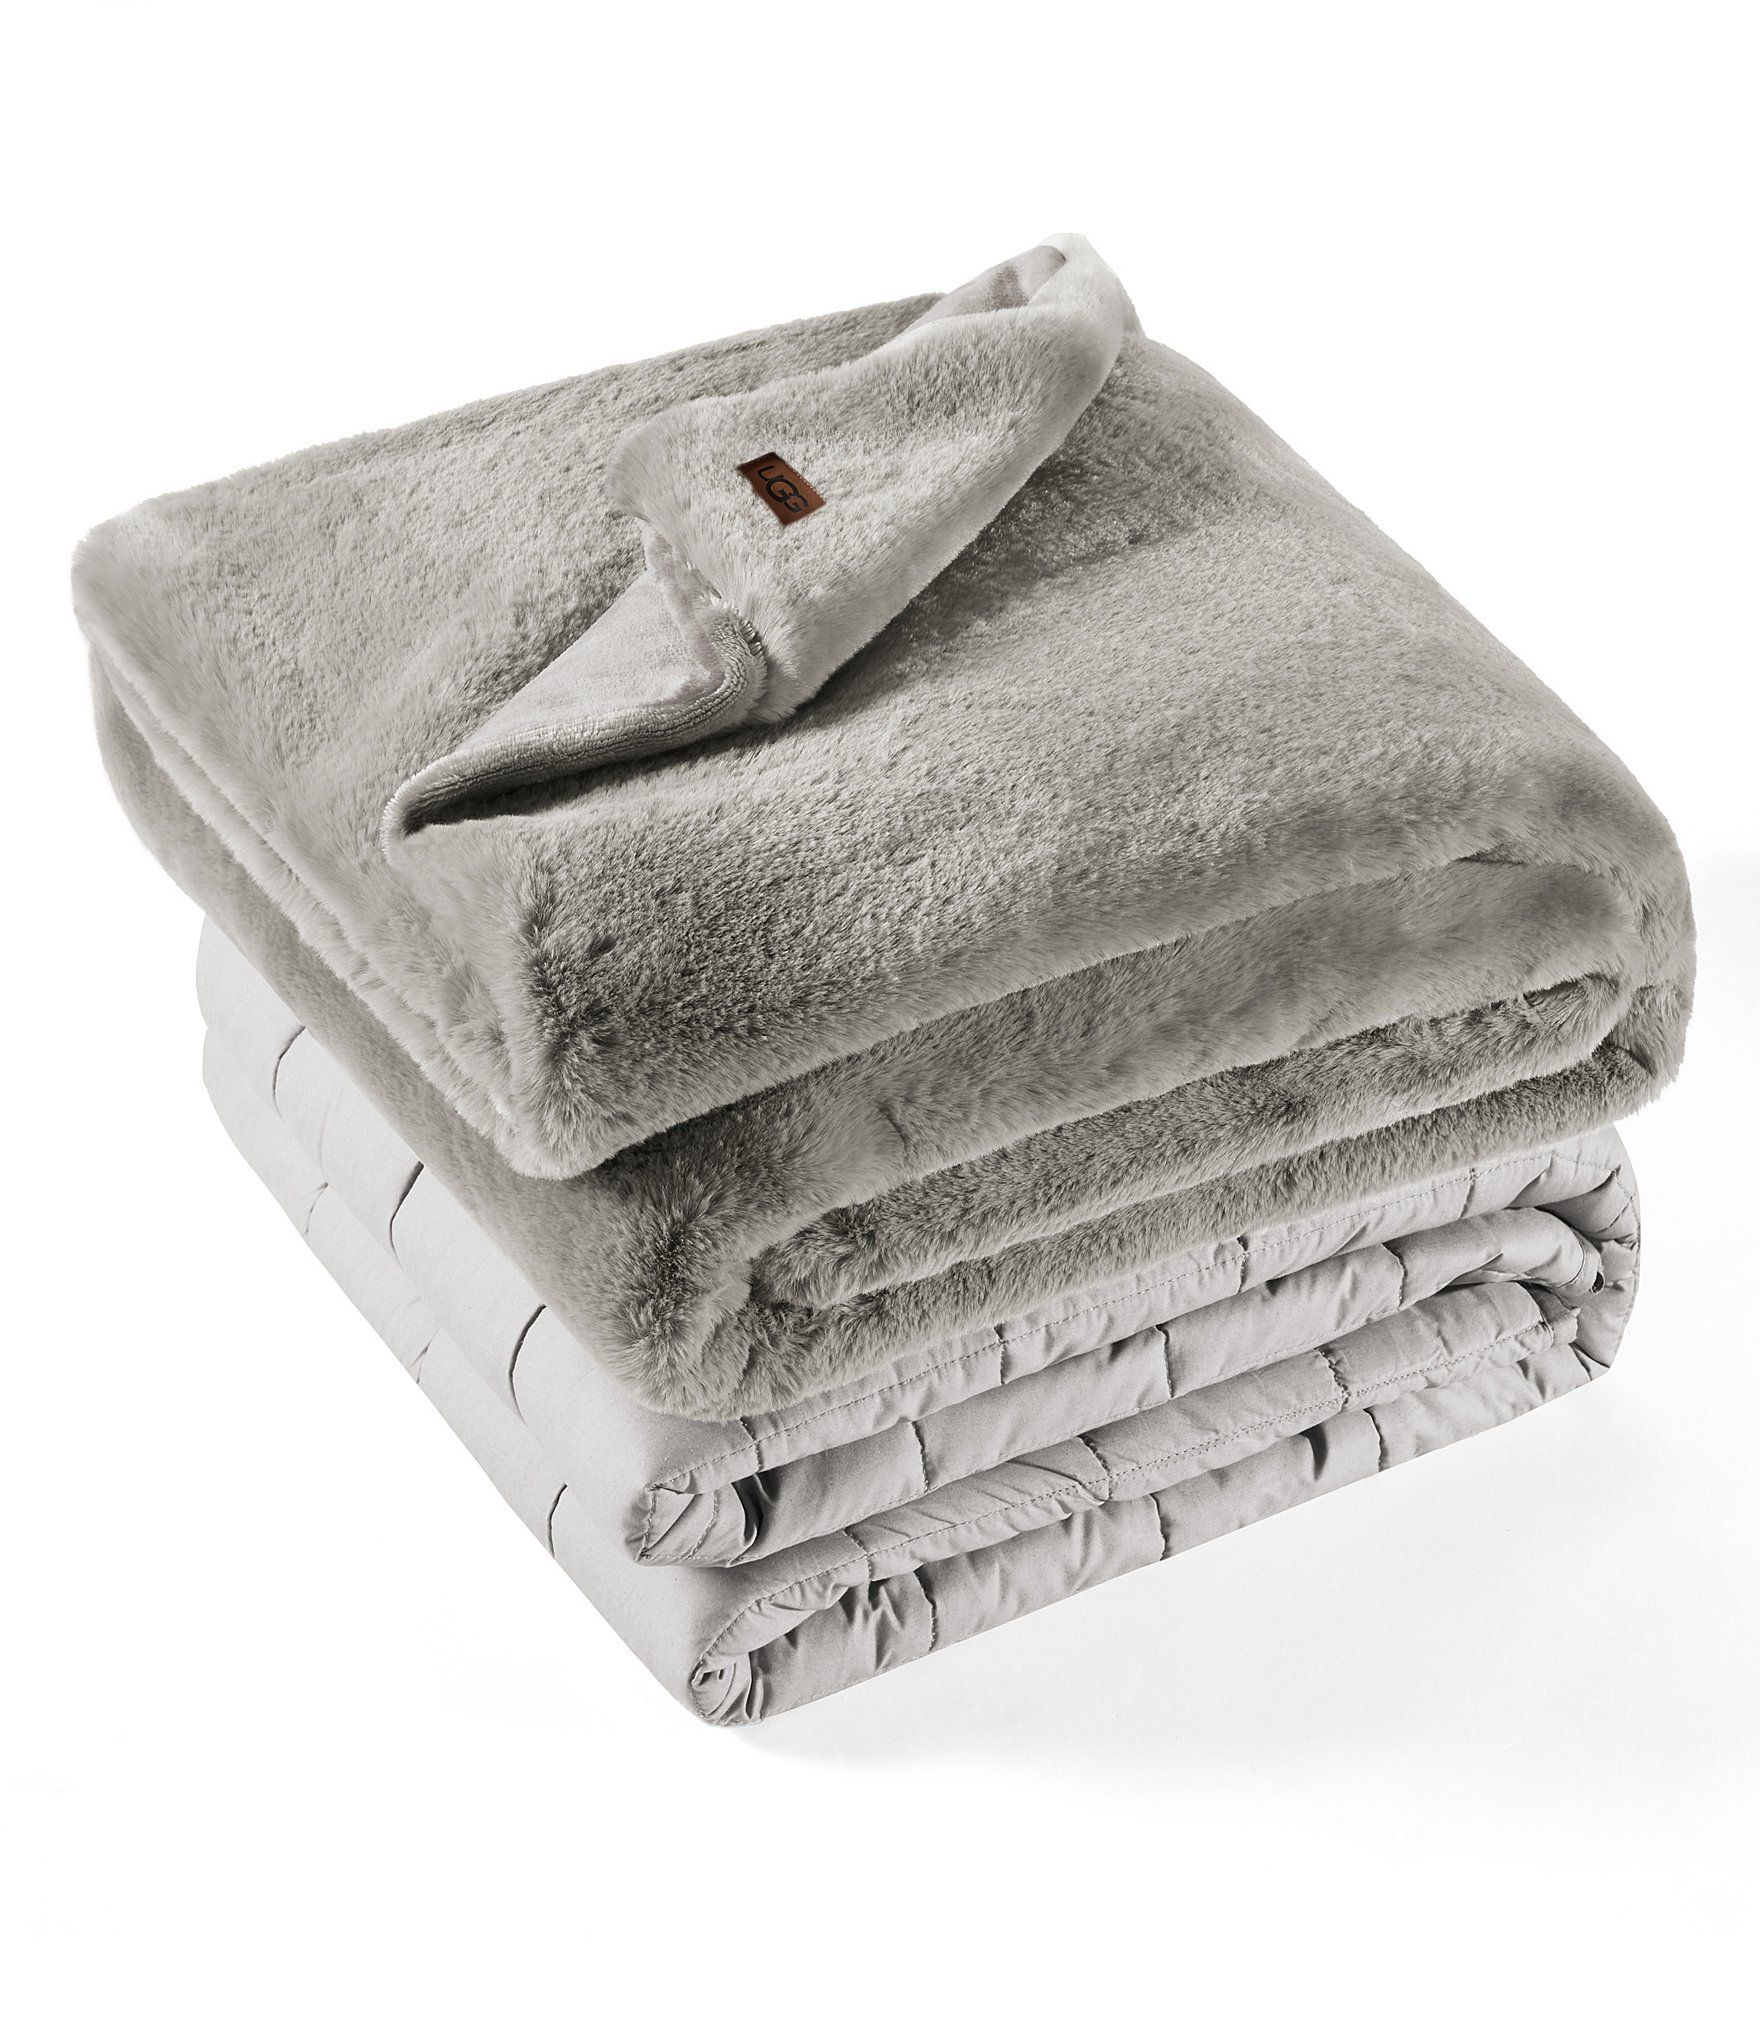 Ugg 12 Lb Weighted Plush Blanket With Cover Plush Blanket Weighted Blanket Uggs